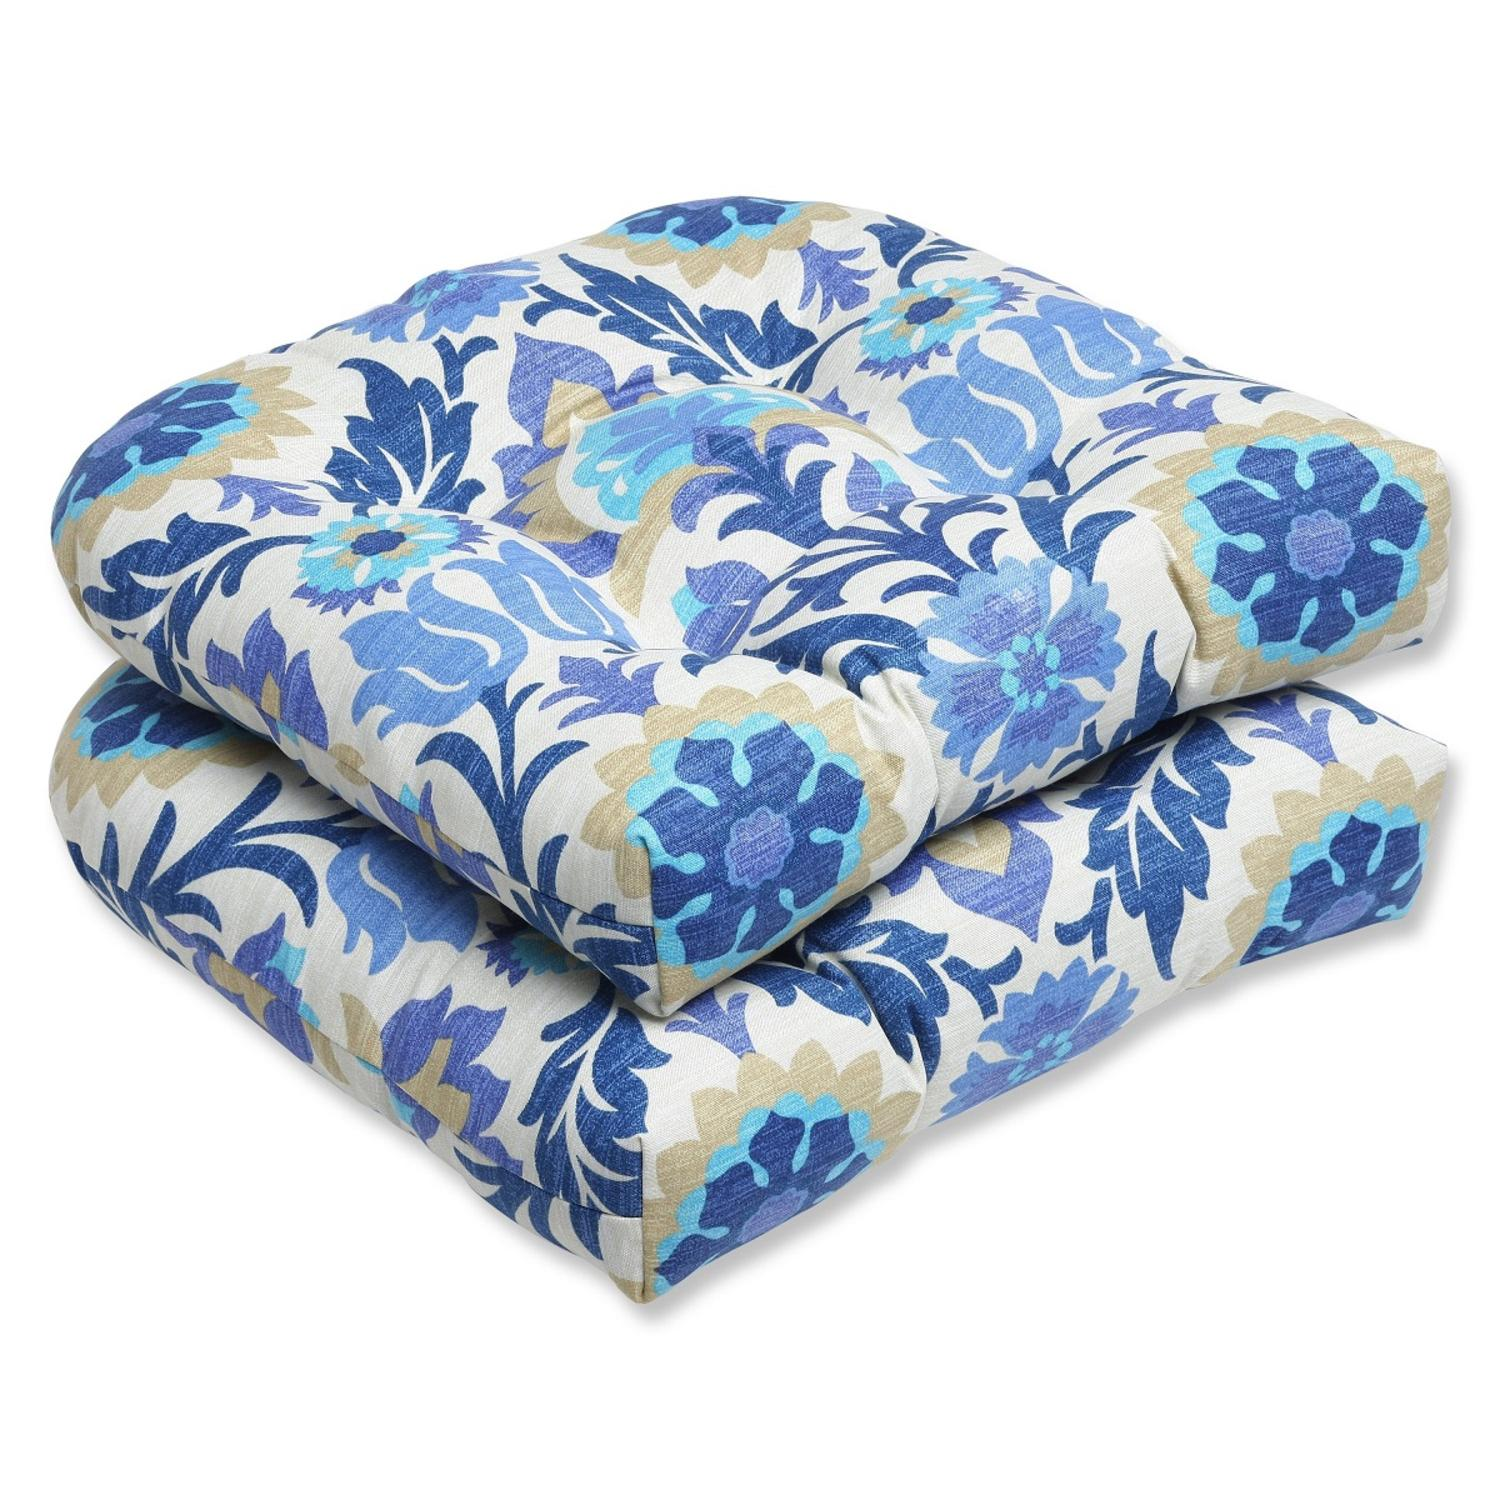 Set of 2 Dream Garden Blue, Light Taupe and Ivory Damask Outdoor Patio Wicker Chair Cushions 19""